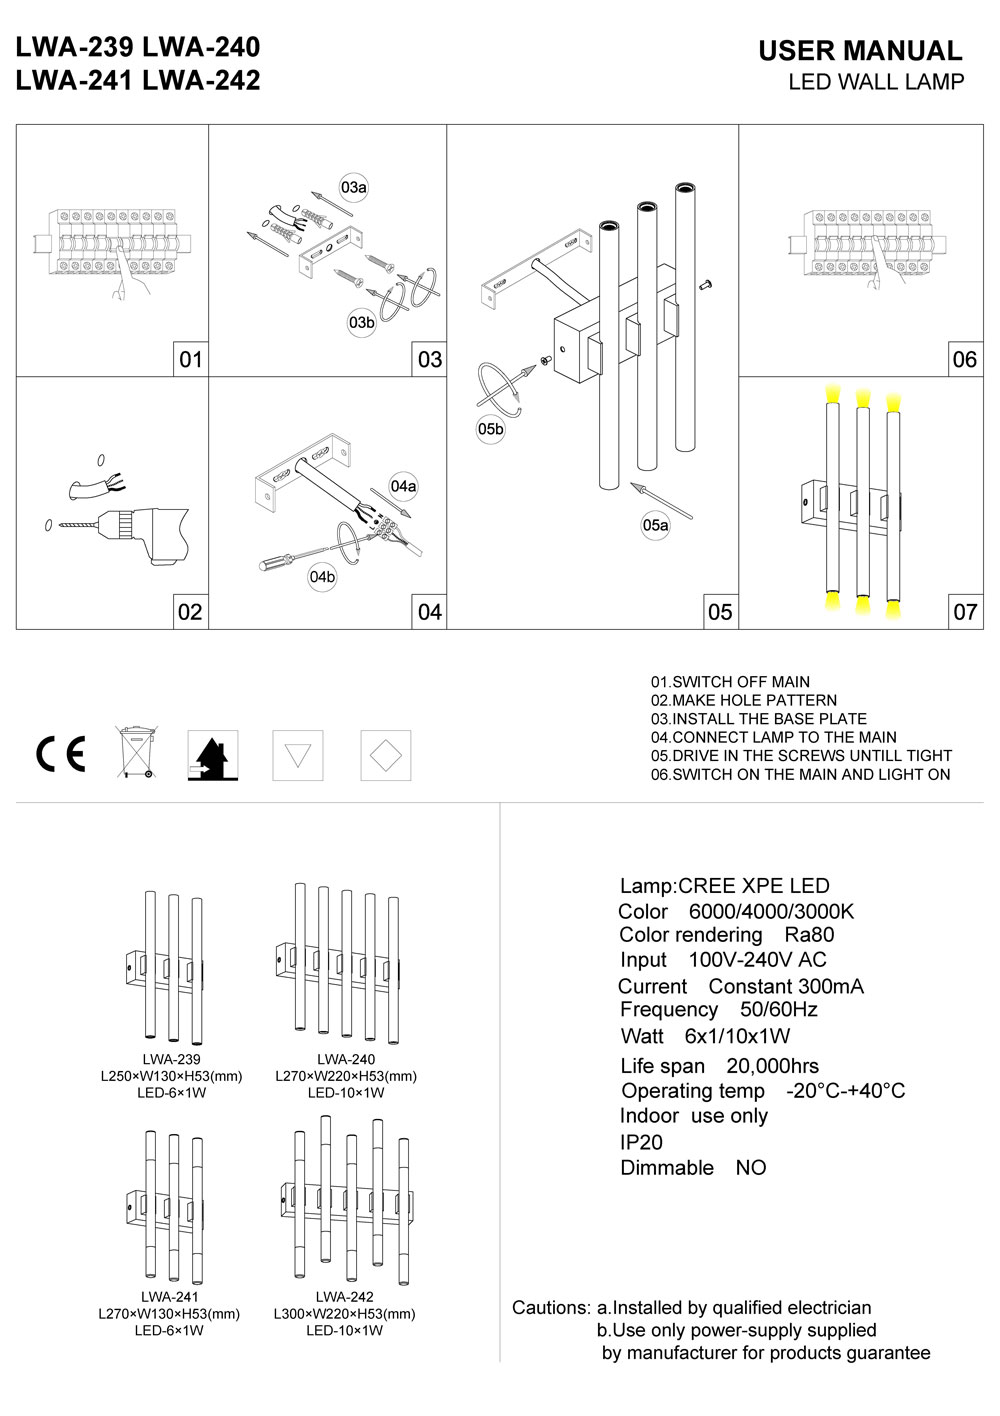 LWA241 interior LED wall light installation guide